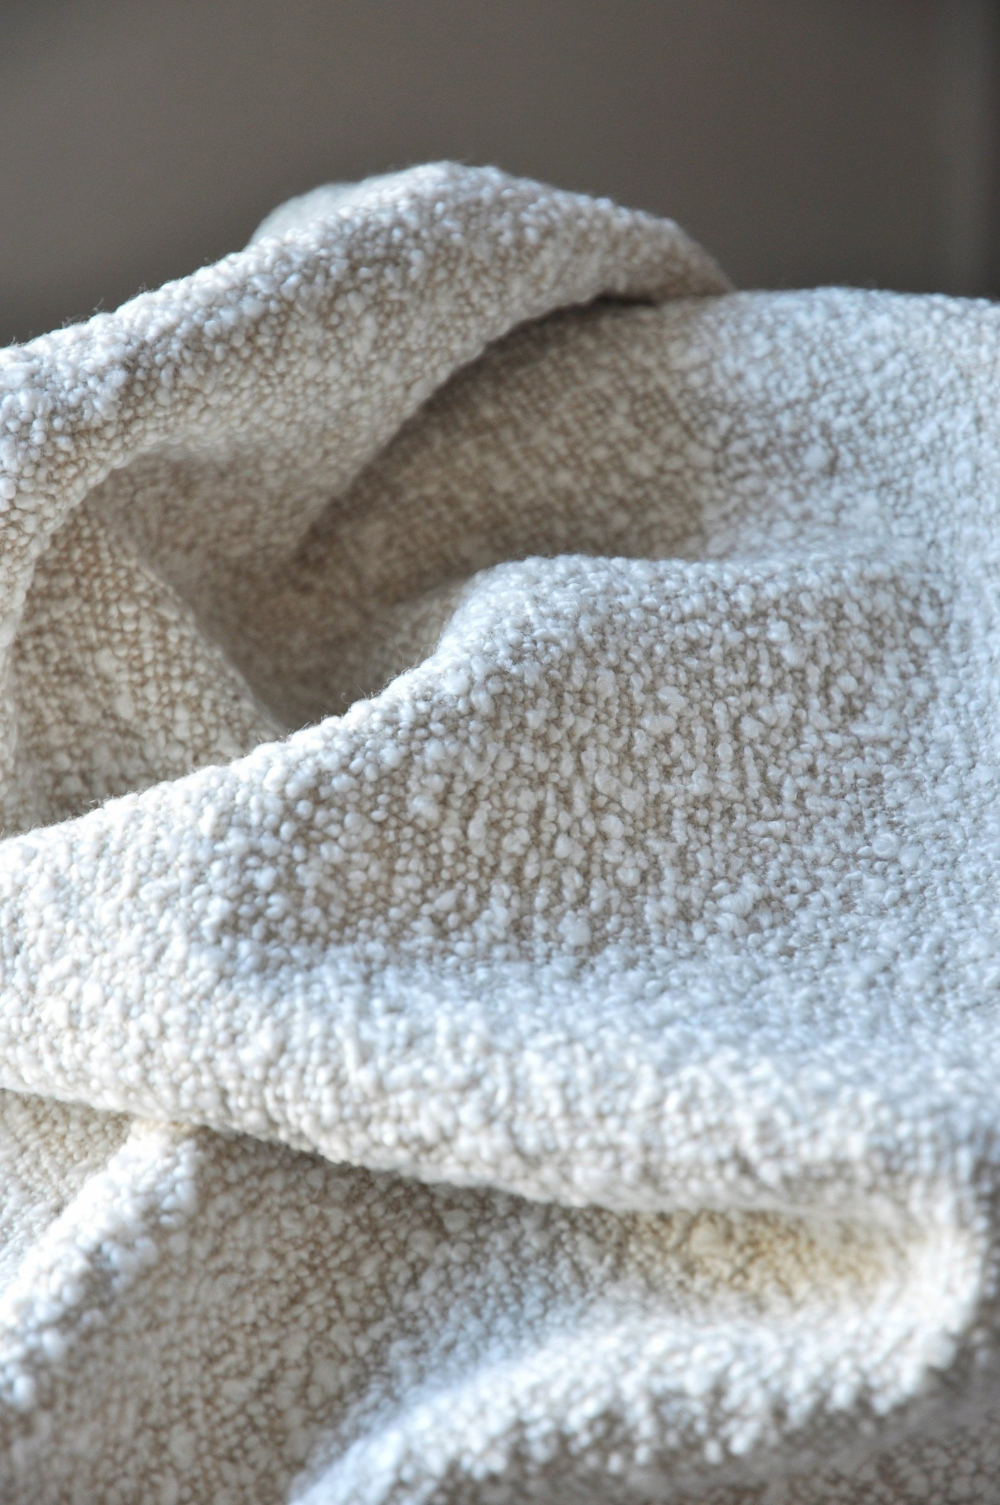 Scalamandre Lelievre Paris Lama Boucle Fabric Available By The Yard Wool Boucle Modern Contemporary Luxury Fabric Upholstery In 2020 Luxury Fabrics Scalamandre Upholstery Trends